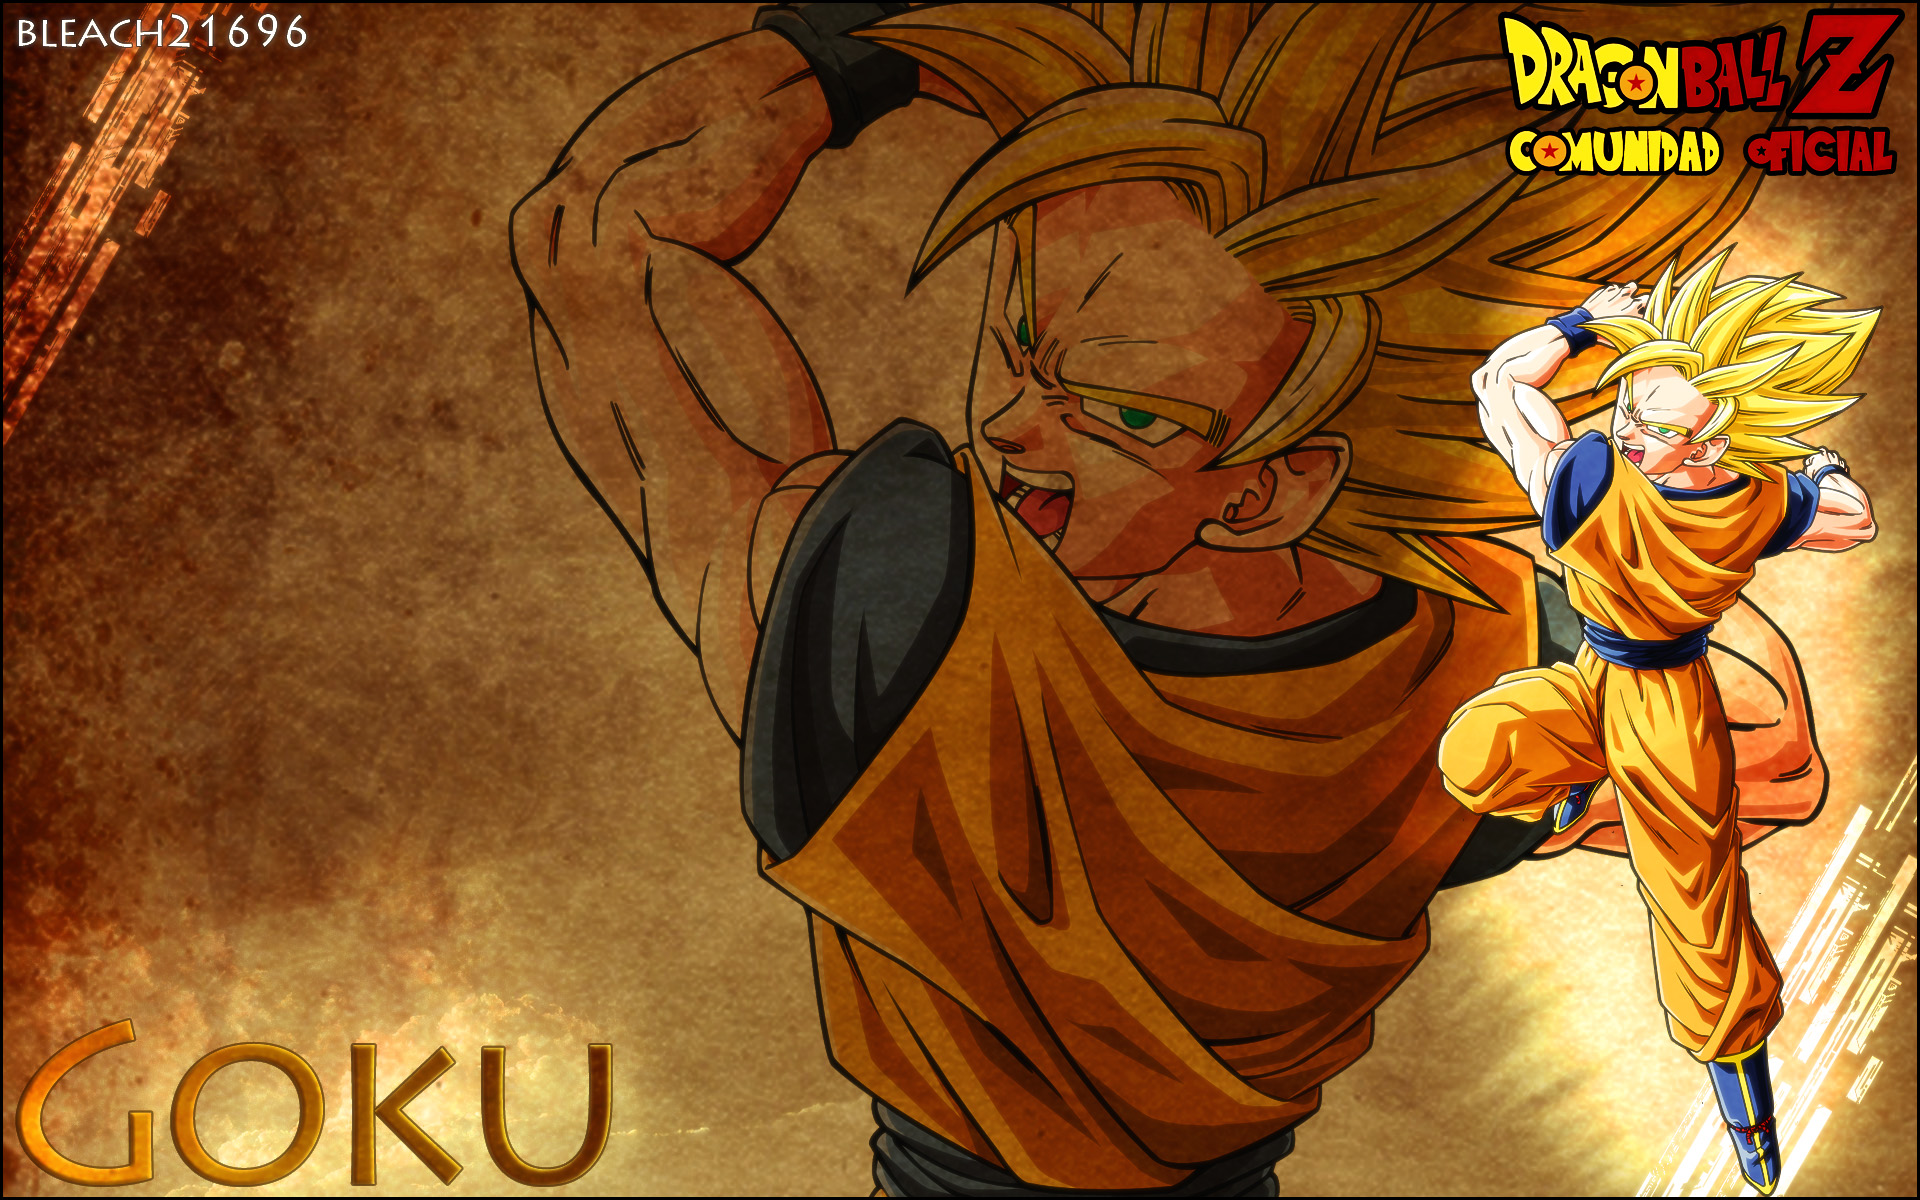 Dragon Ball Z Live Screenshot 2 Hd Wallpaper